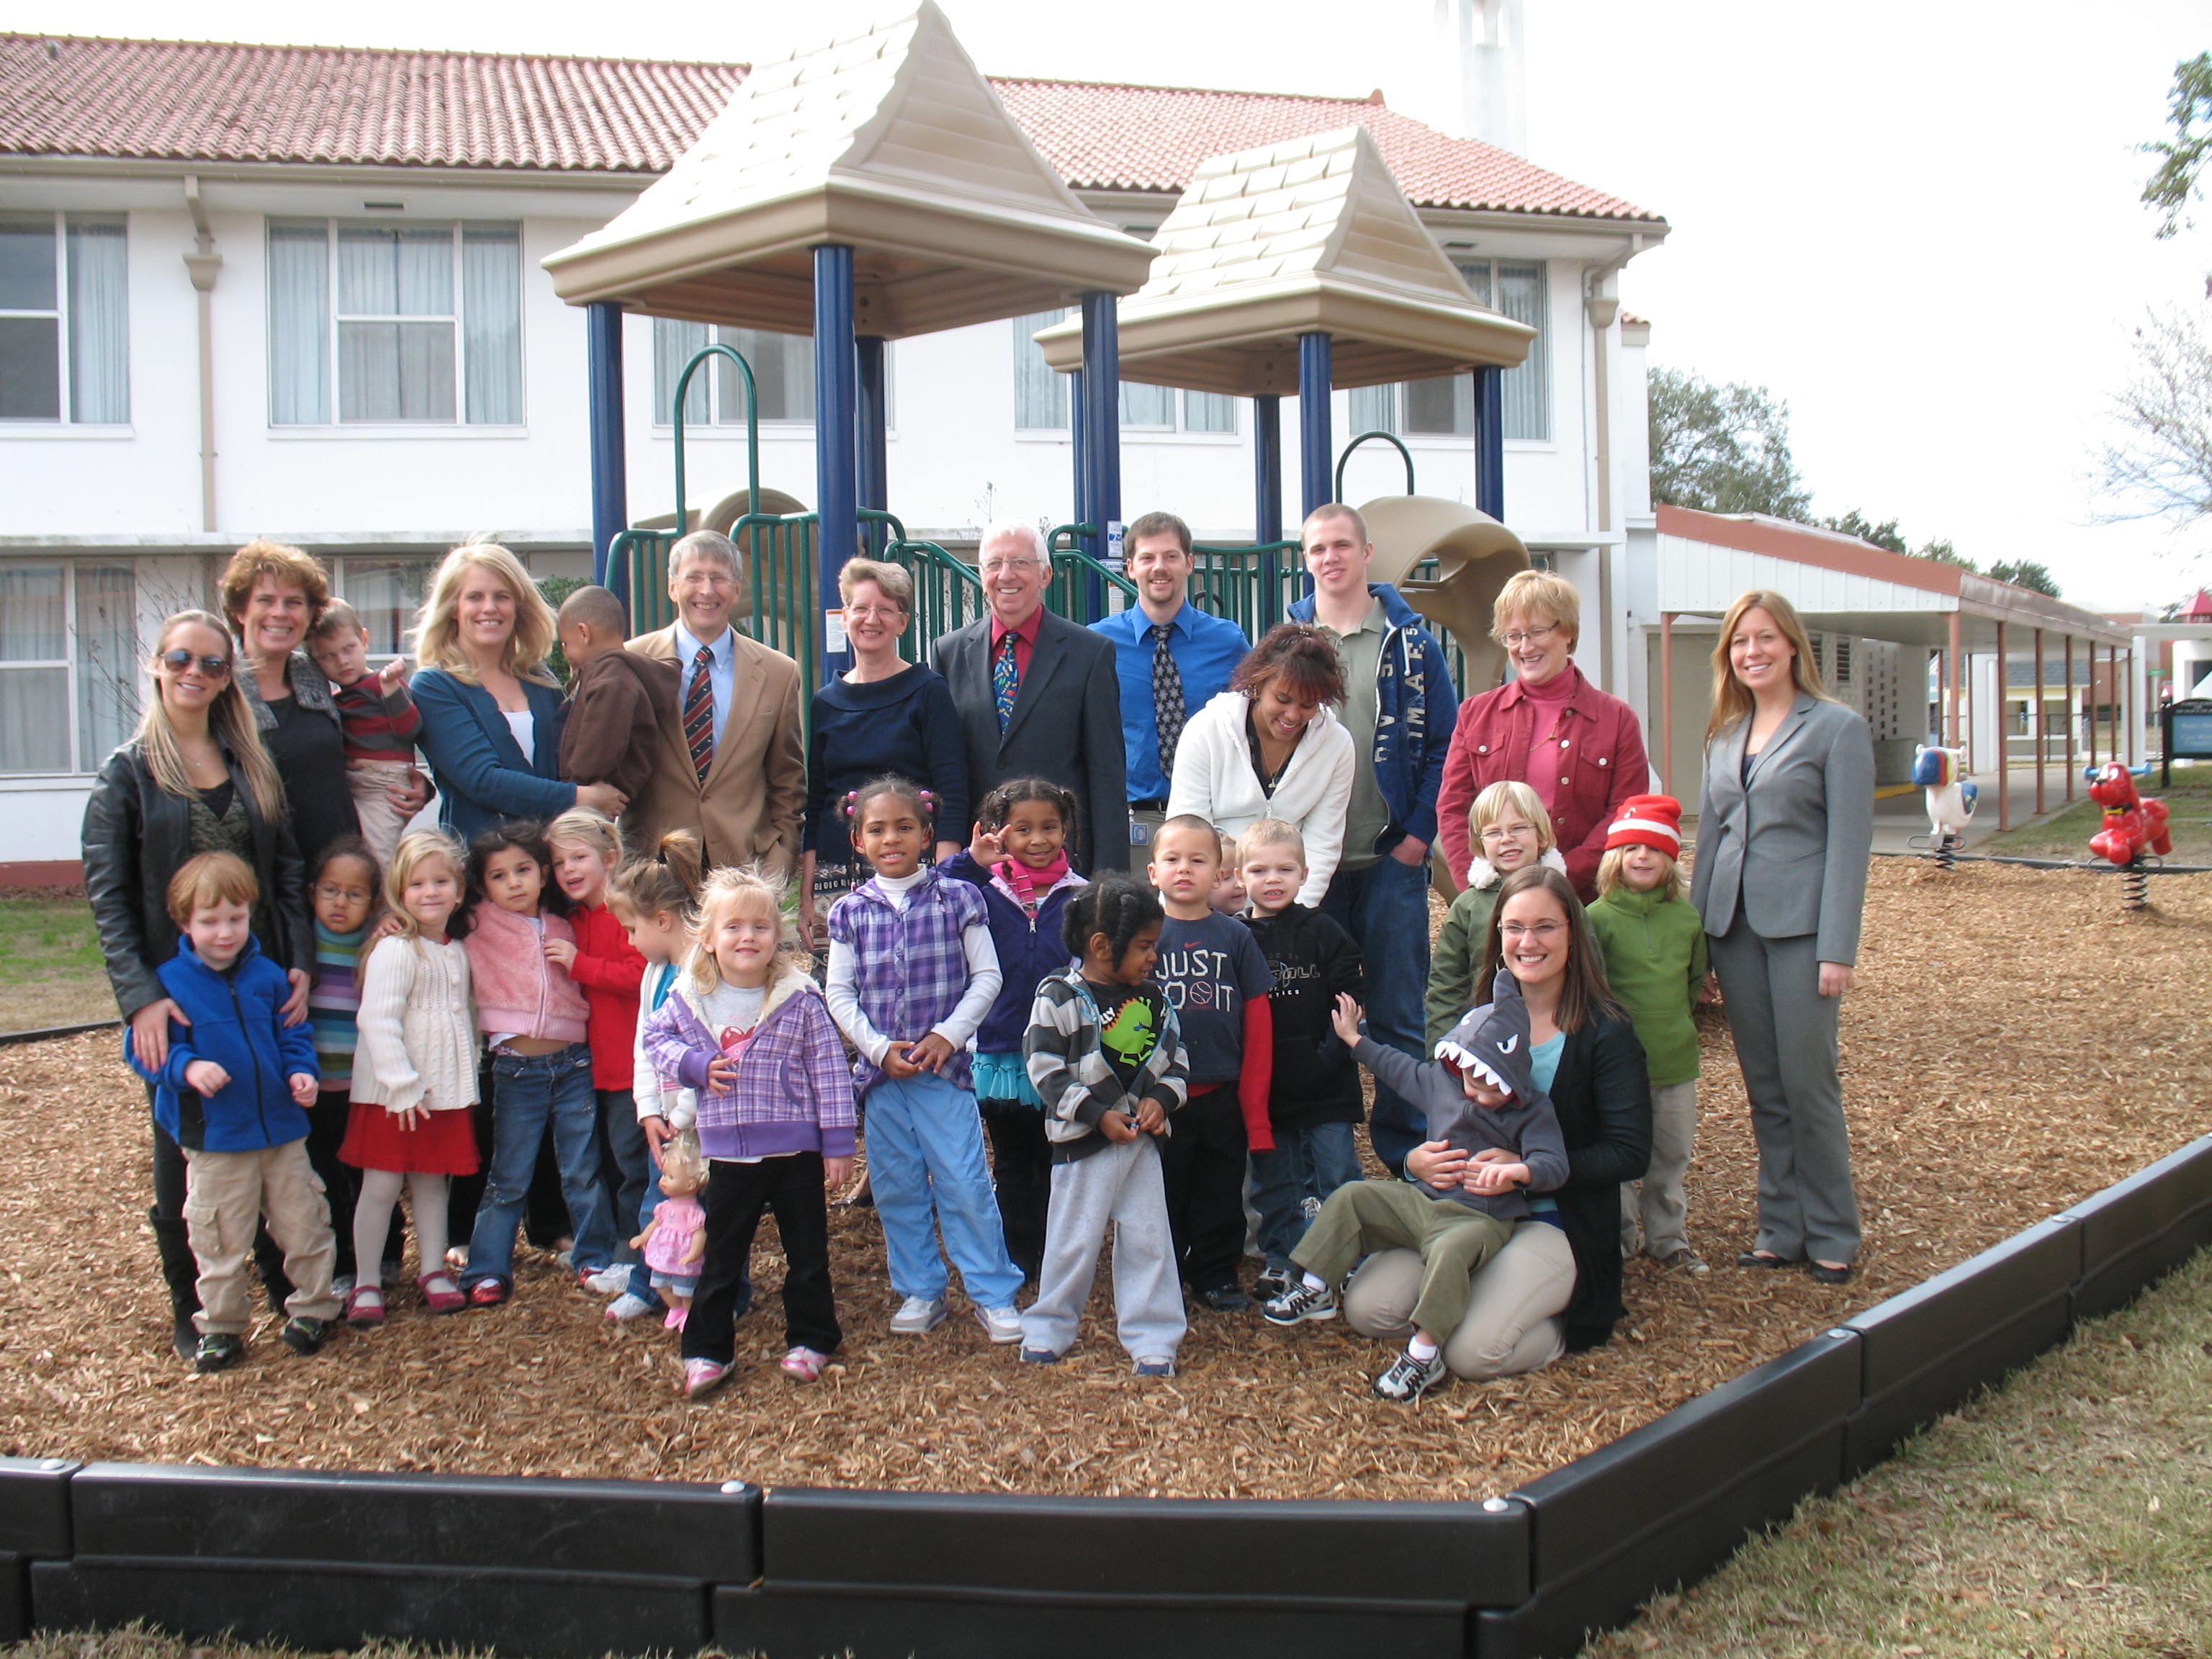 group photo of parents and children at a playground